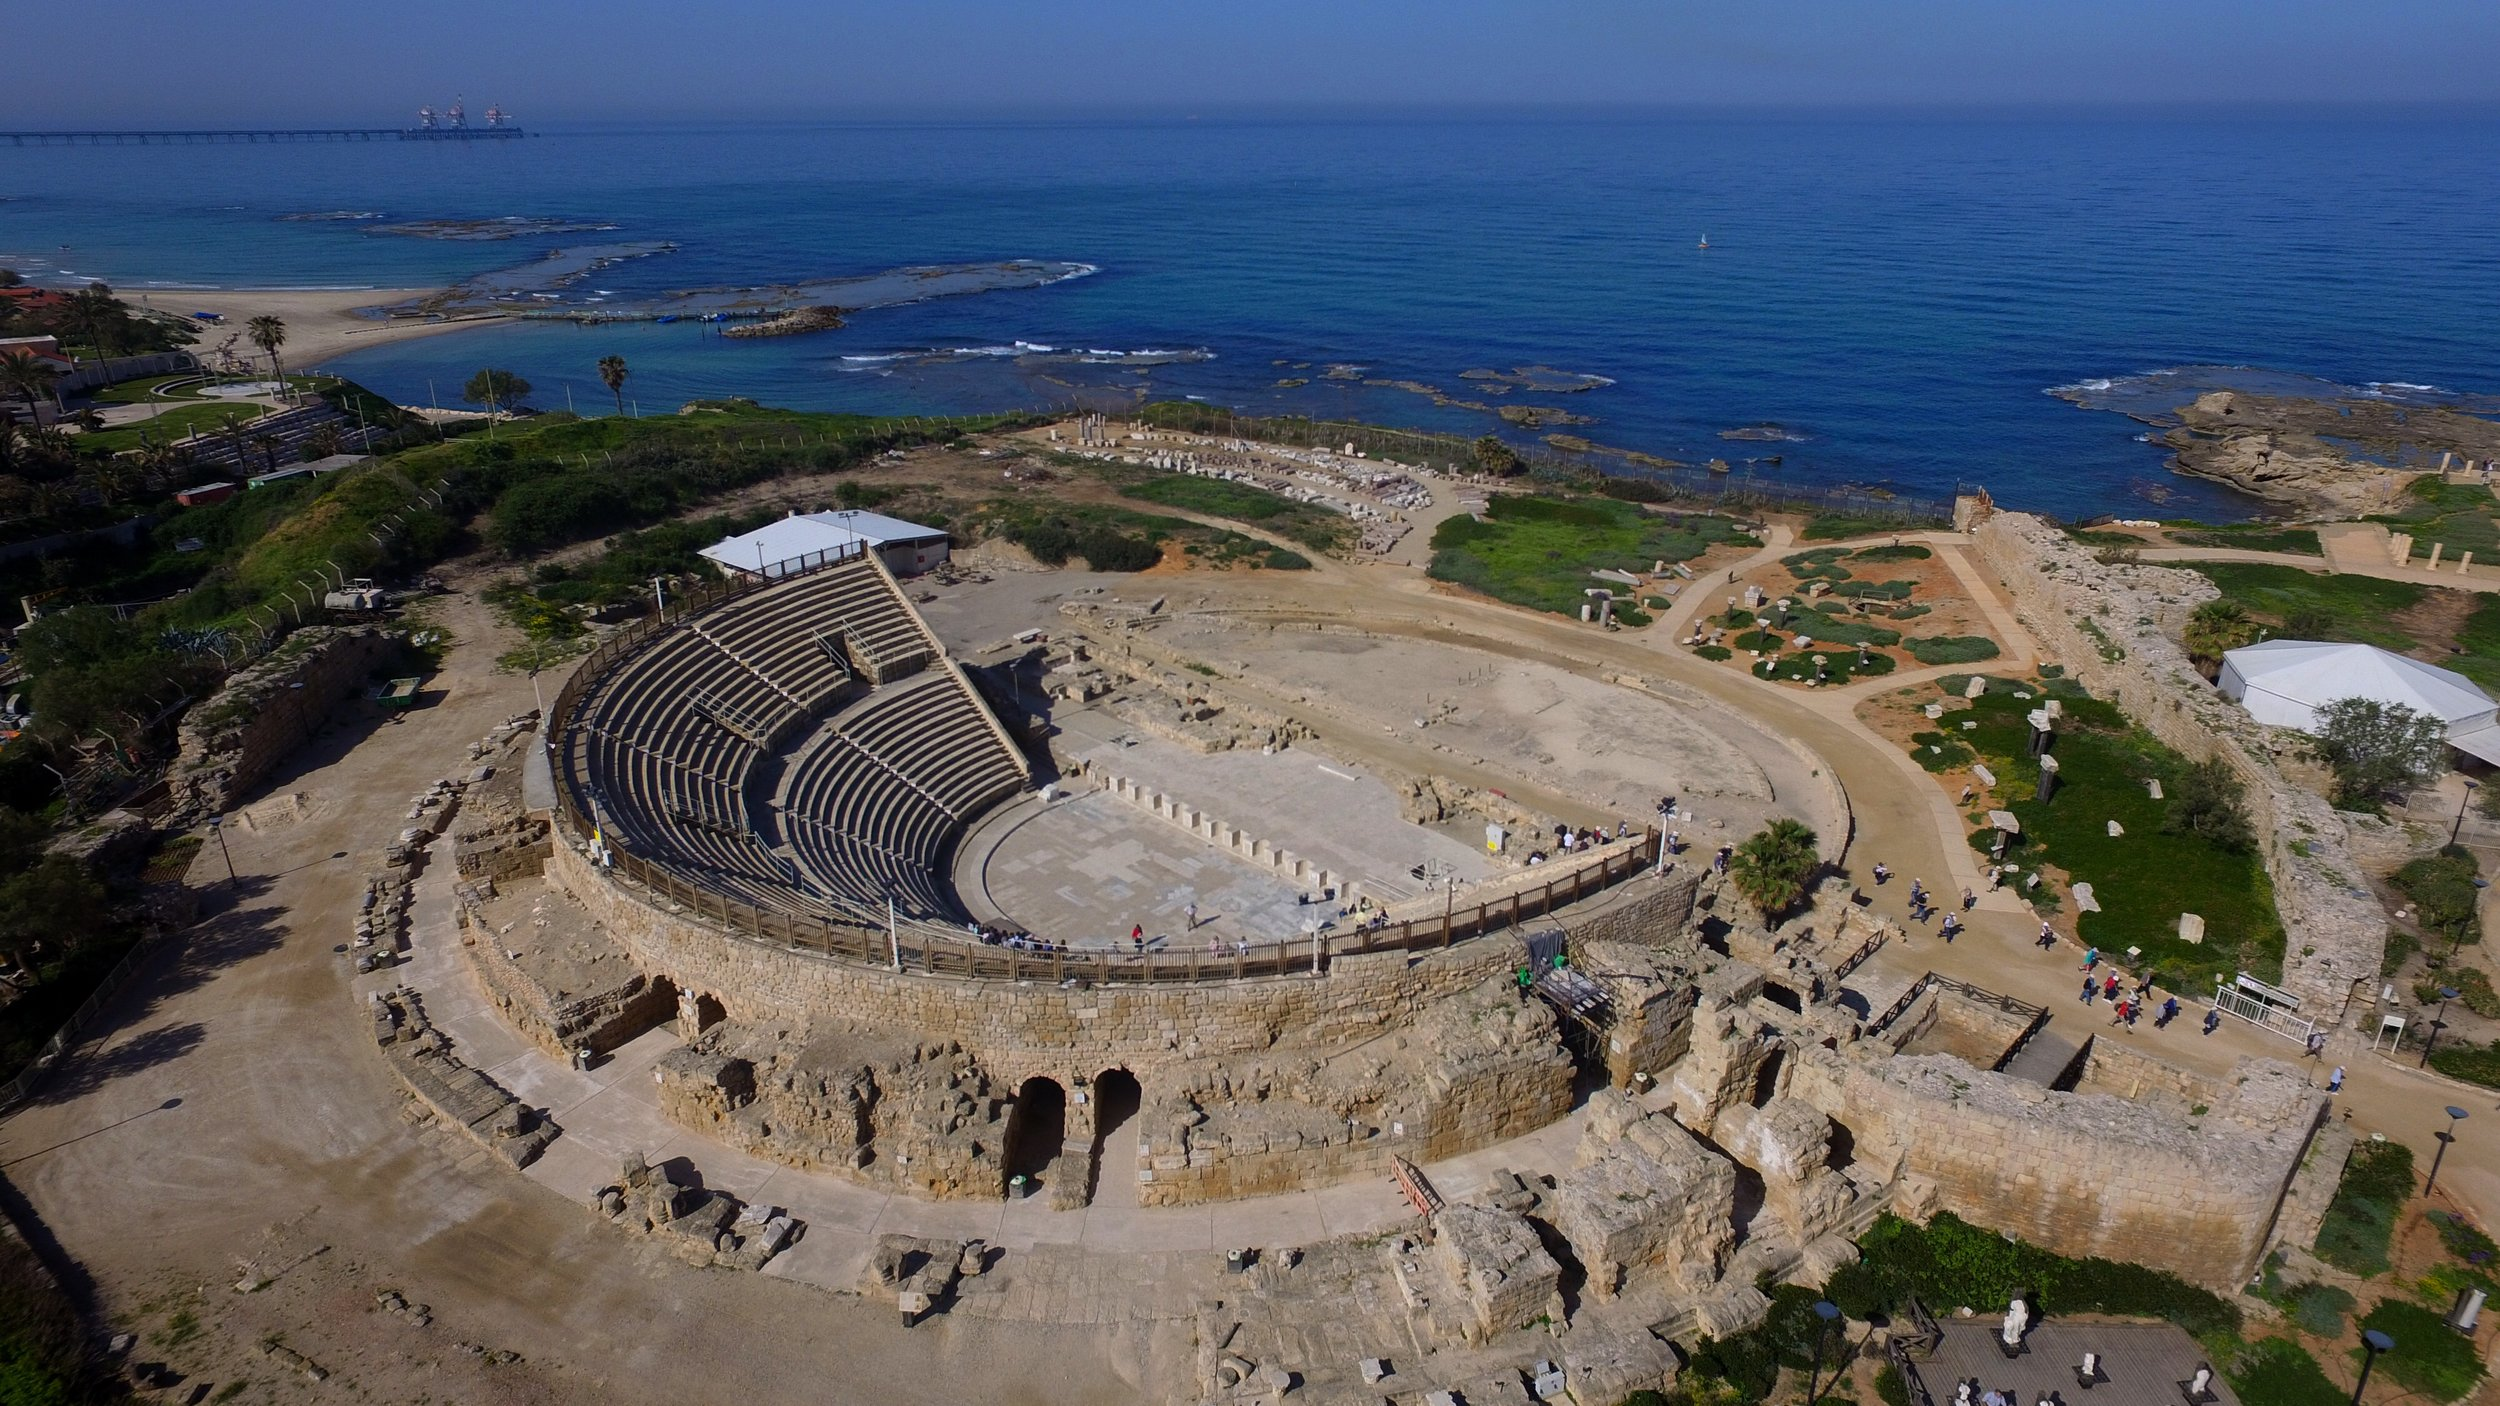 Caesarea Maritima is the last city in Israel that Paul was imprisoned before heading to Rome